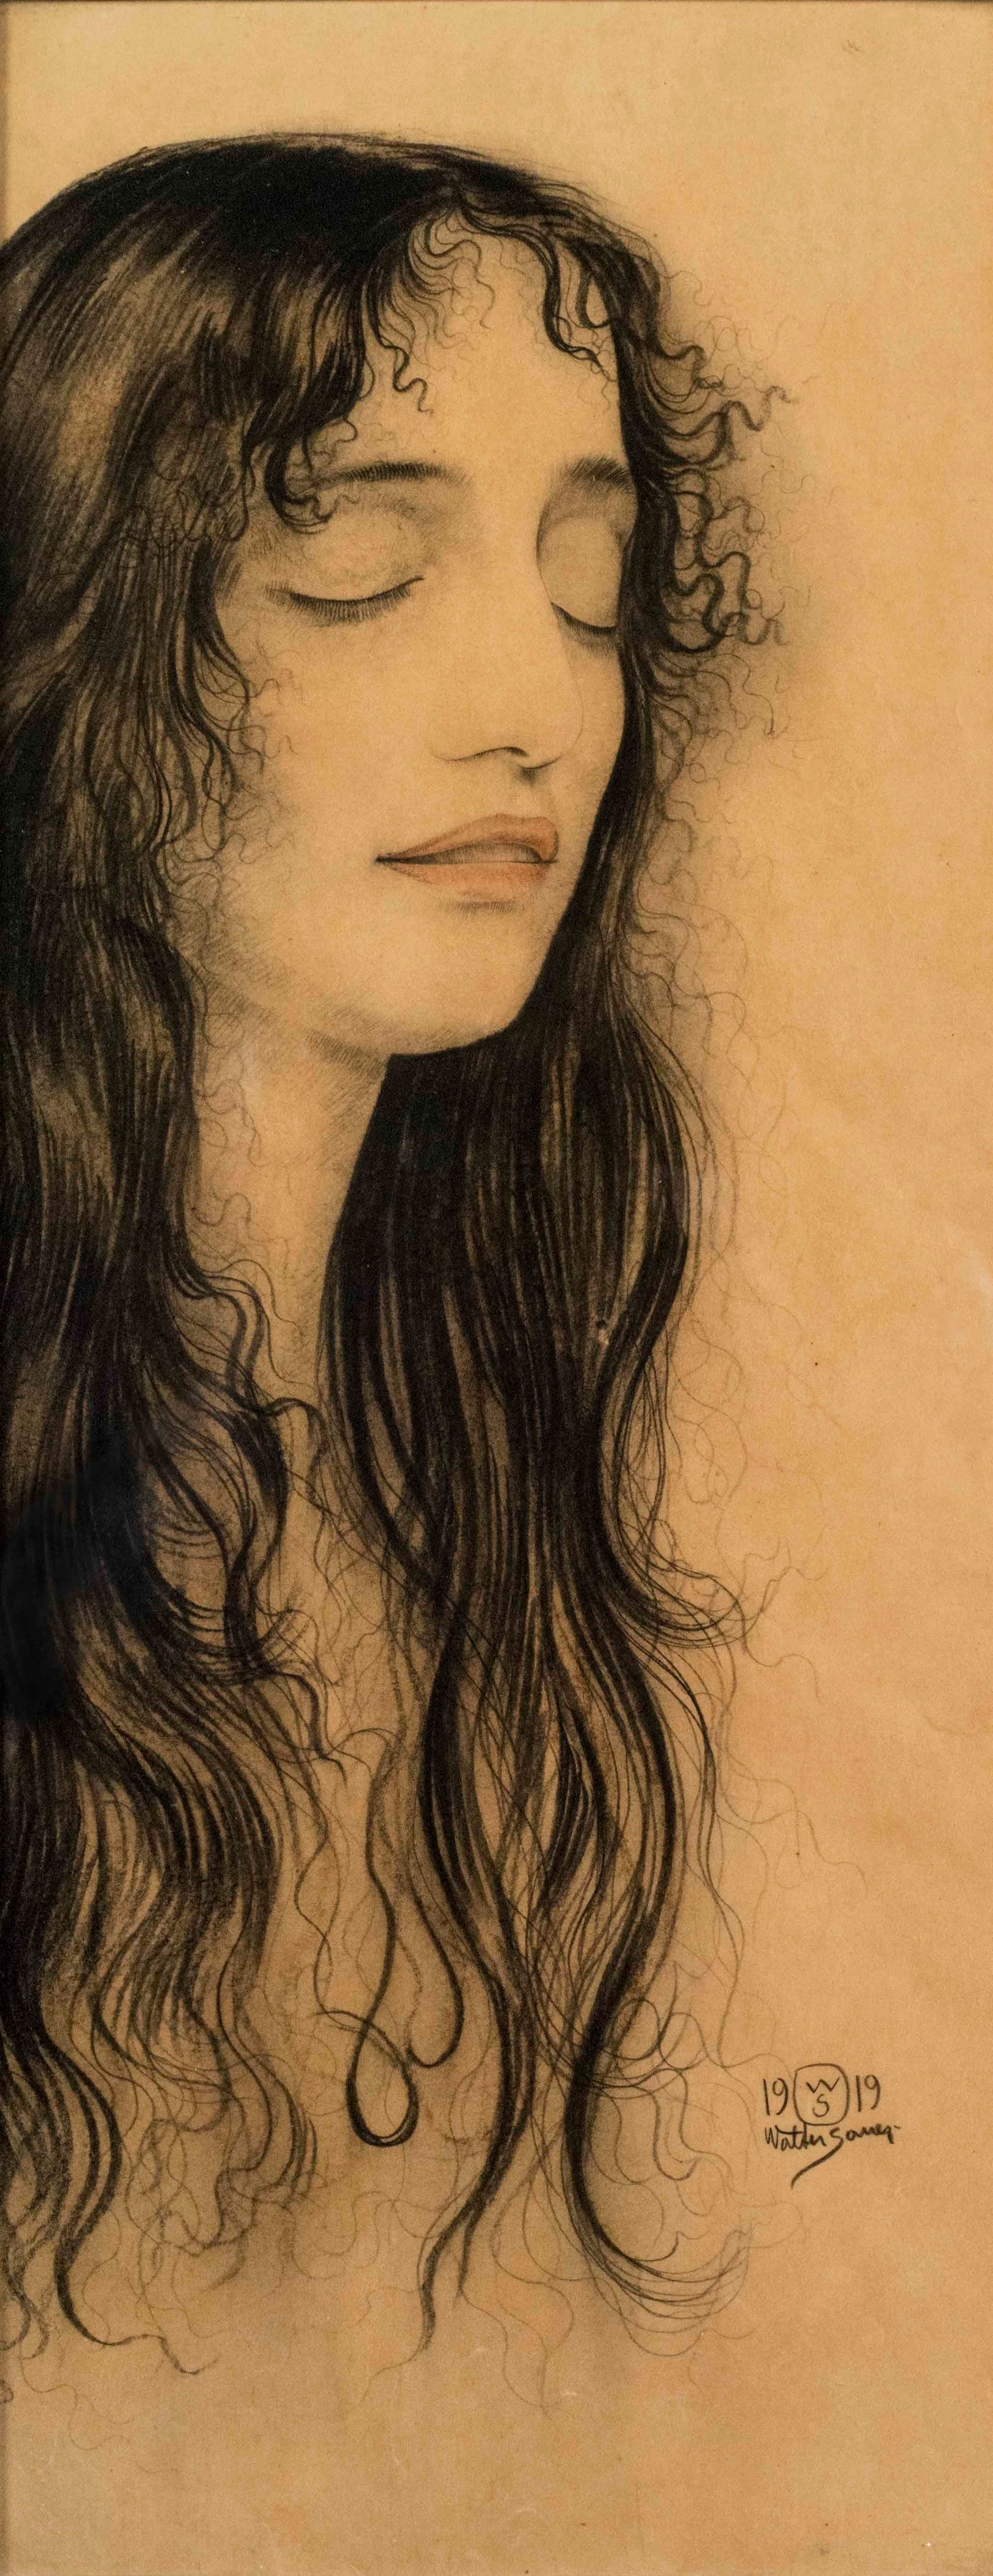 Walter Sauer, Portrait of a woman with long hair